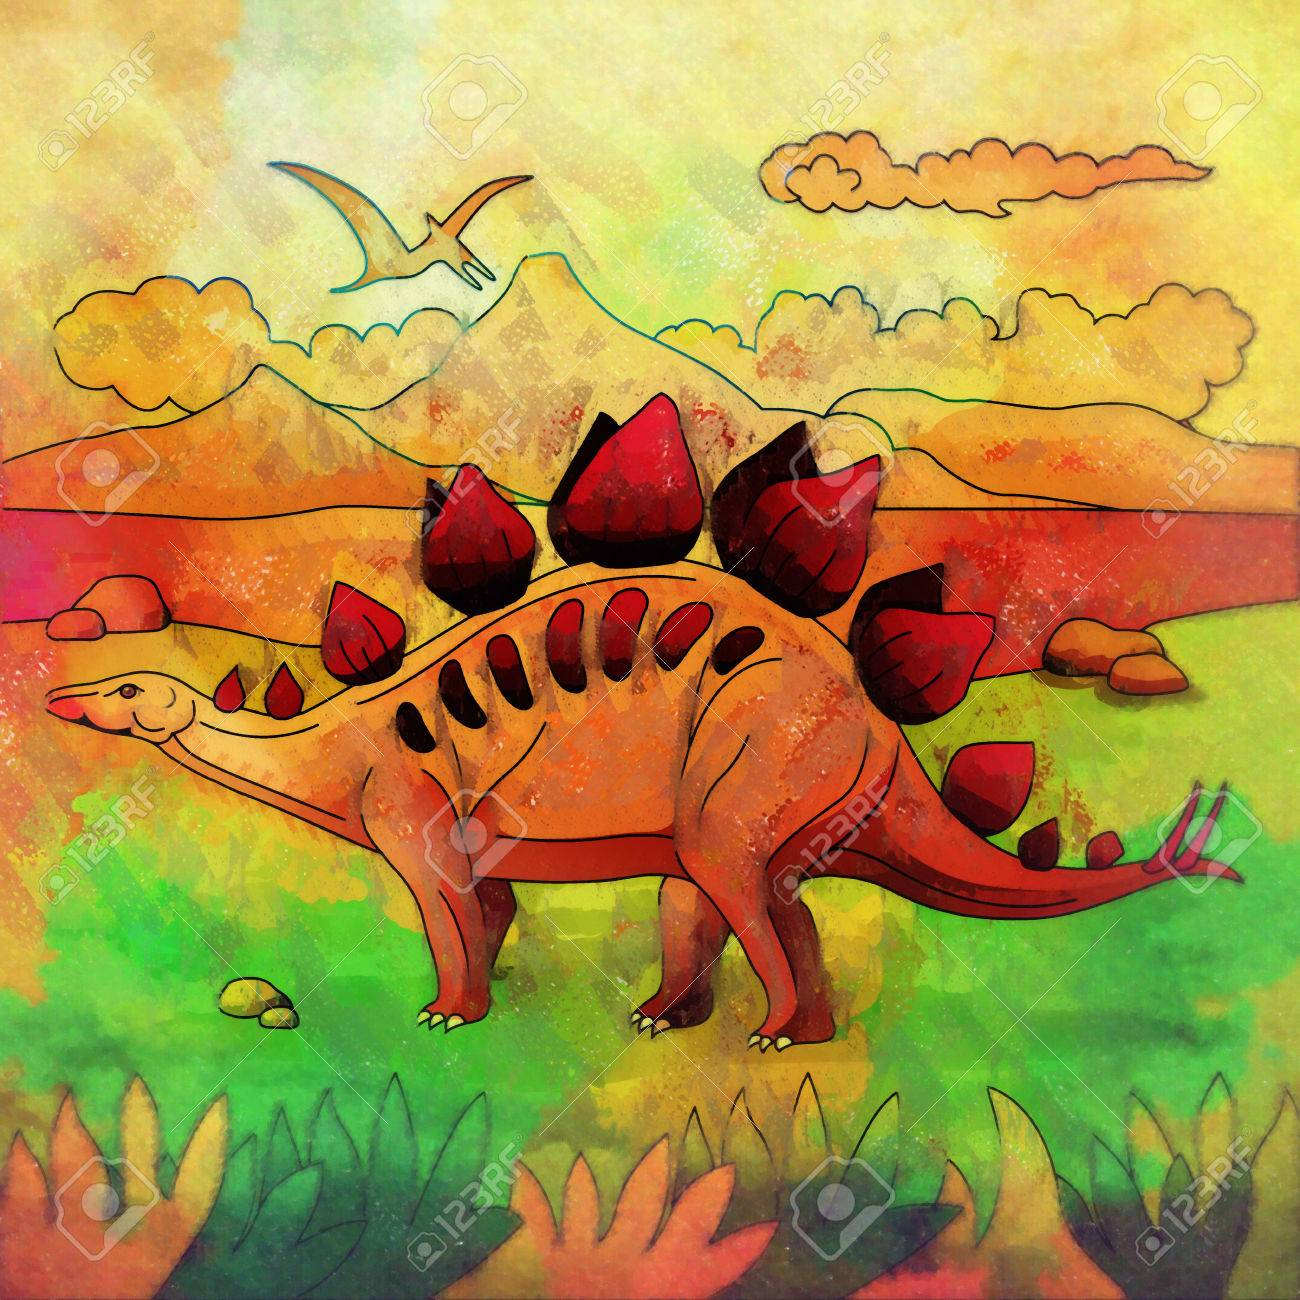 Stegosaurus Illustration Of A Dinosaur In Its Habitat Stock Photo